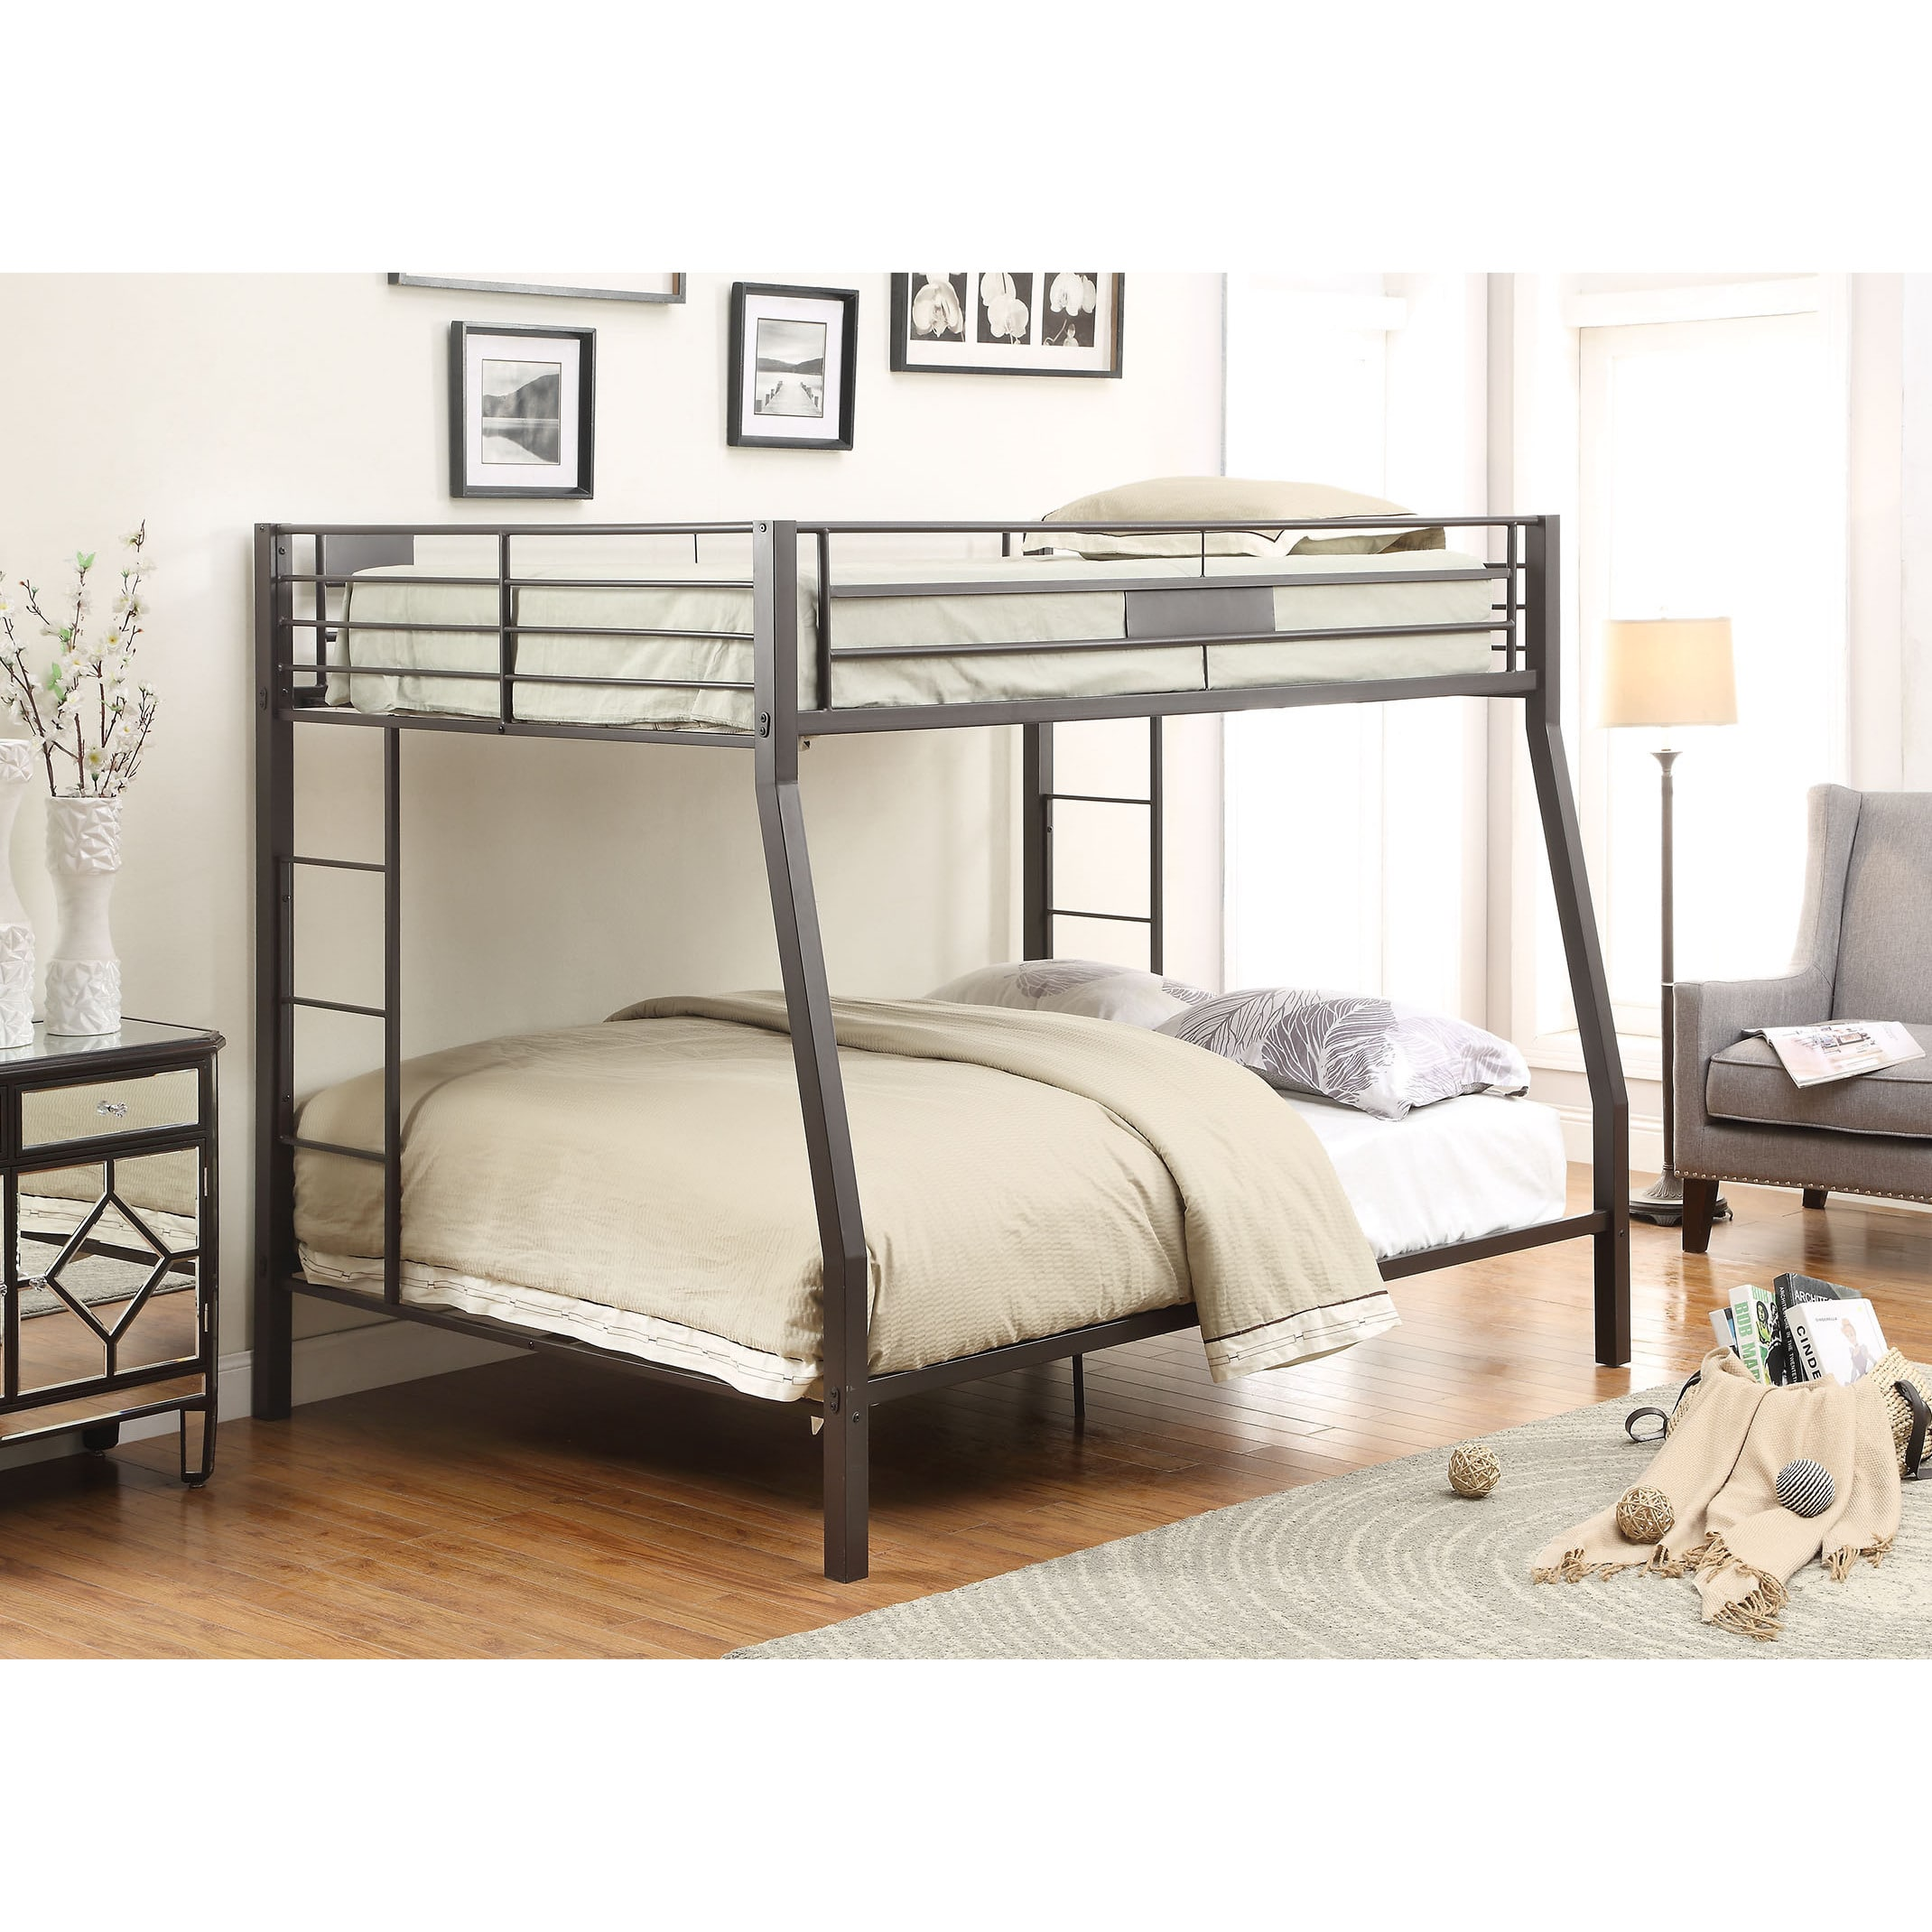 Acme Limbra Full Xl Over Queen Bunk Bed In Sandy Black Multiple